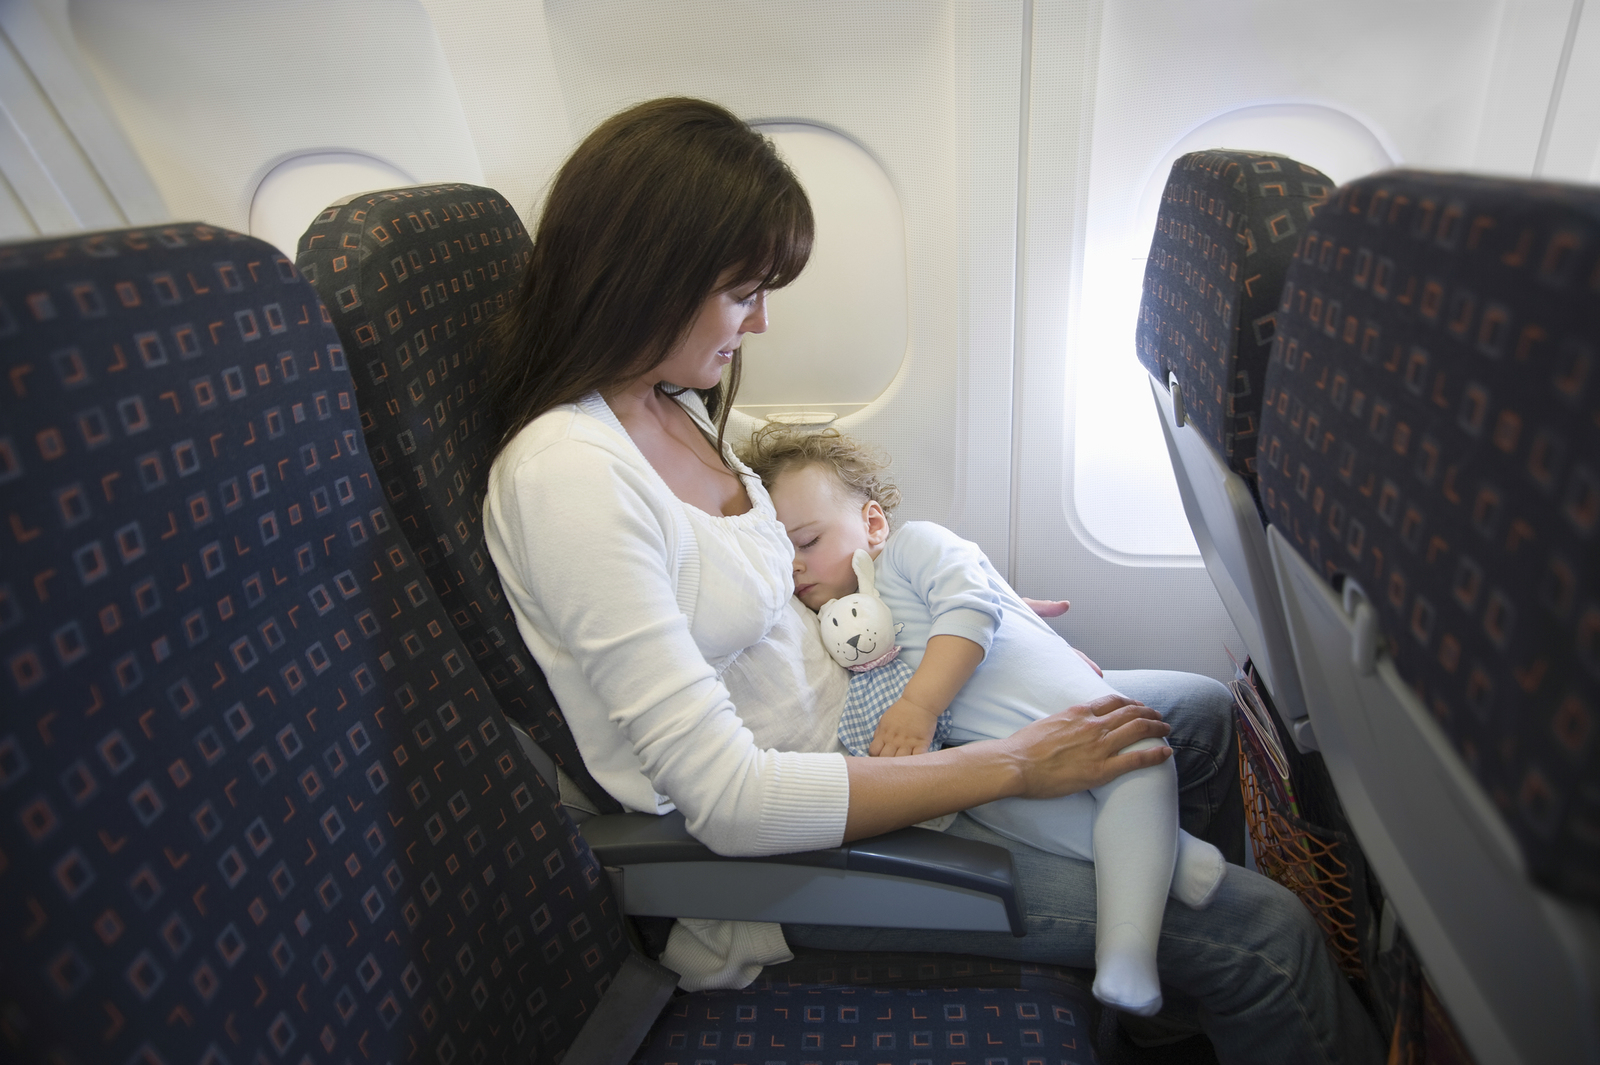 don't drink the water on airplanes or use for babies